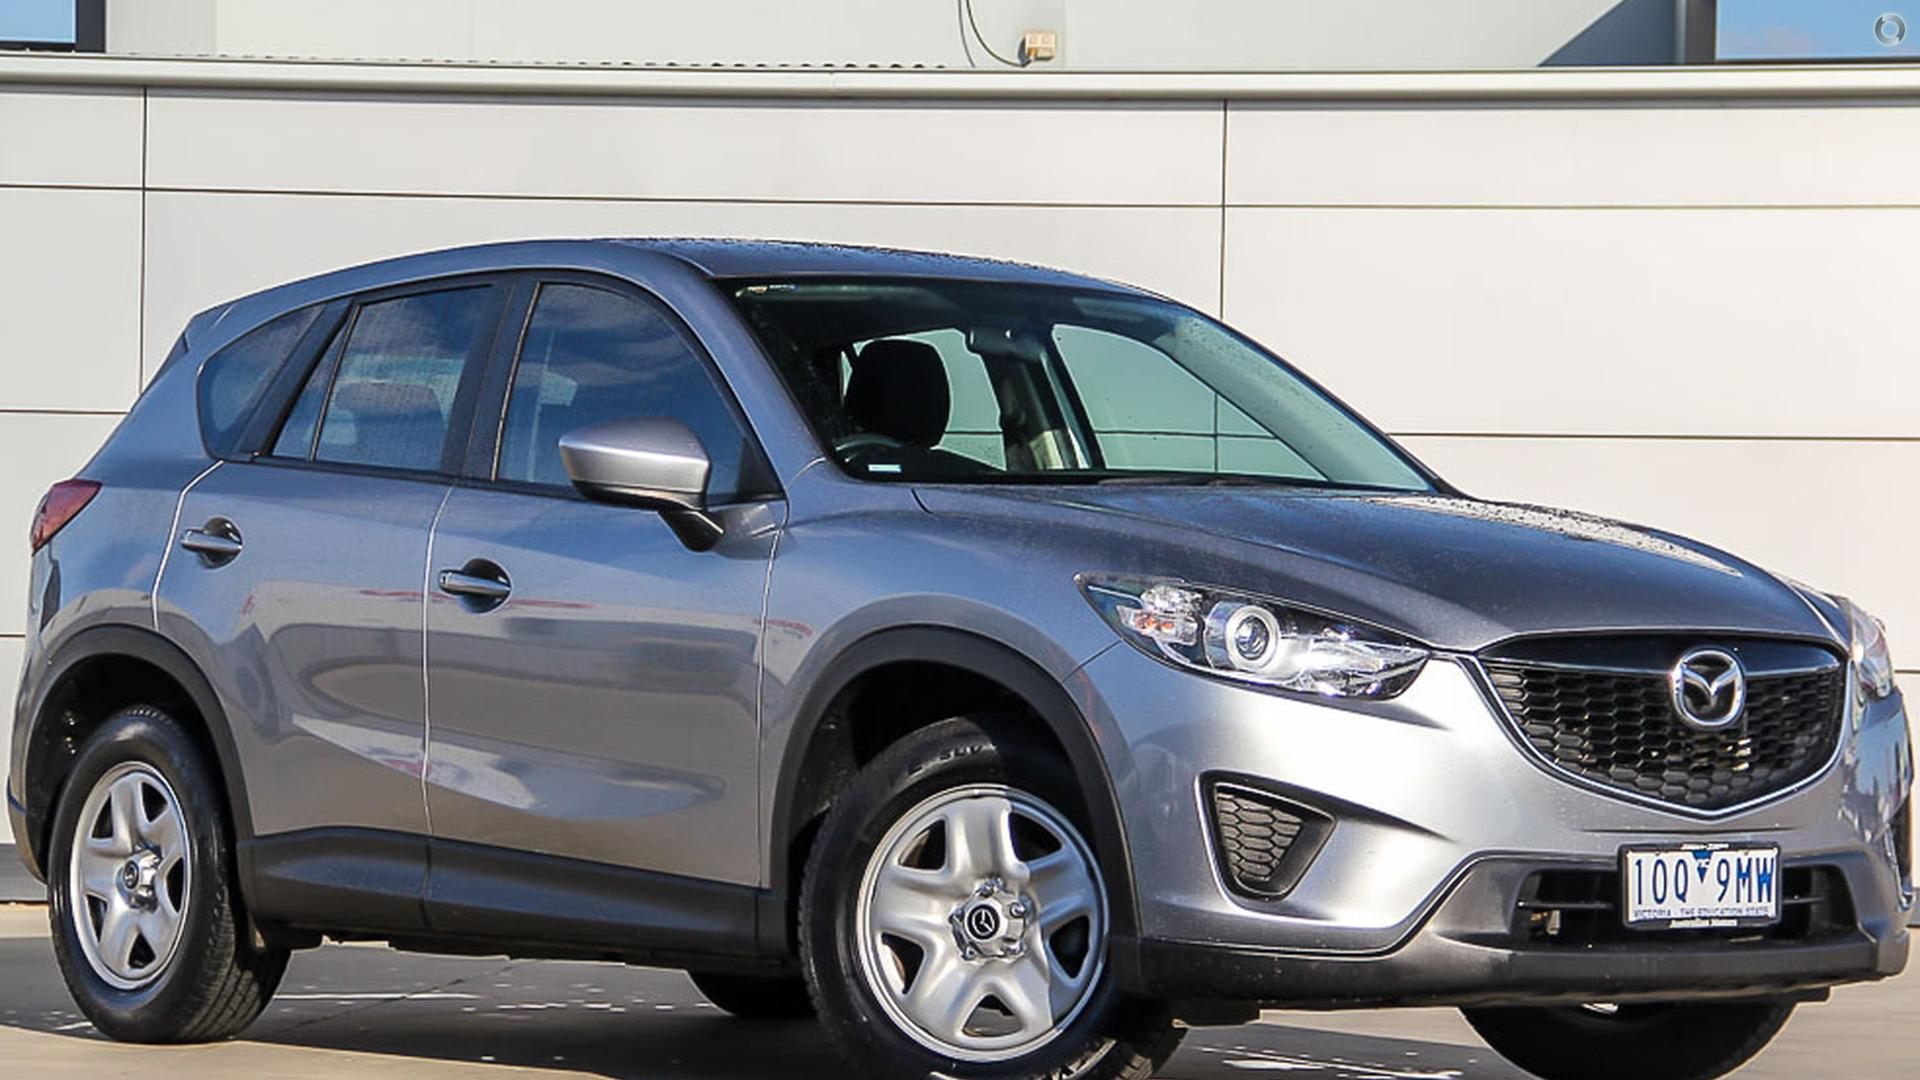 2013 Mazda Cx-5 KE Series